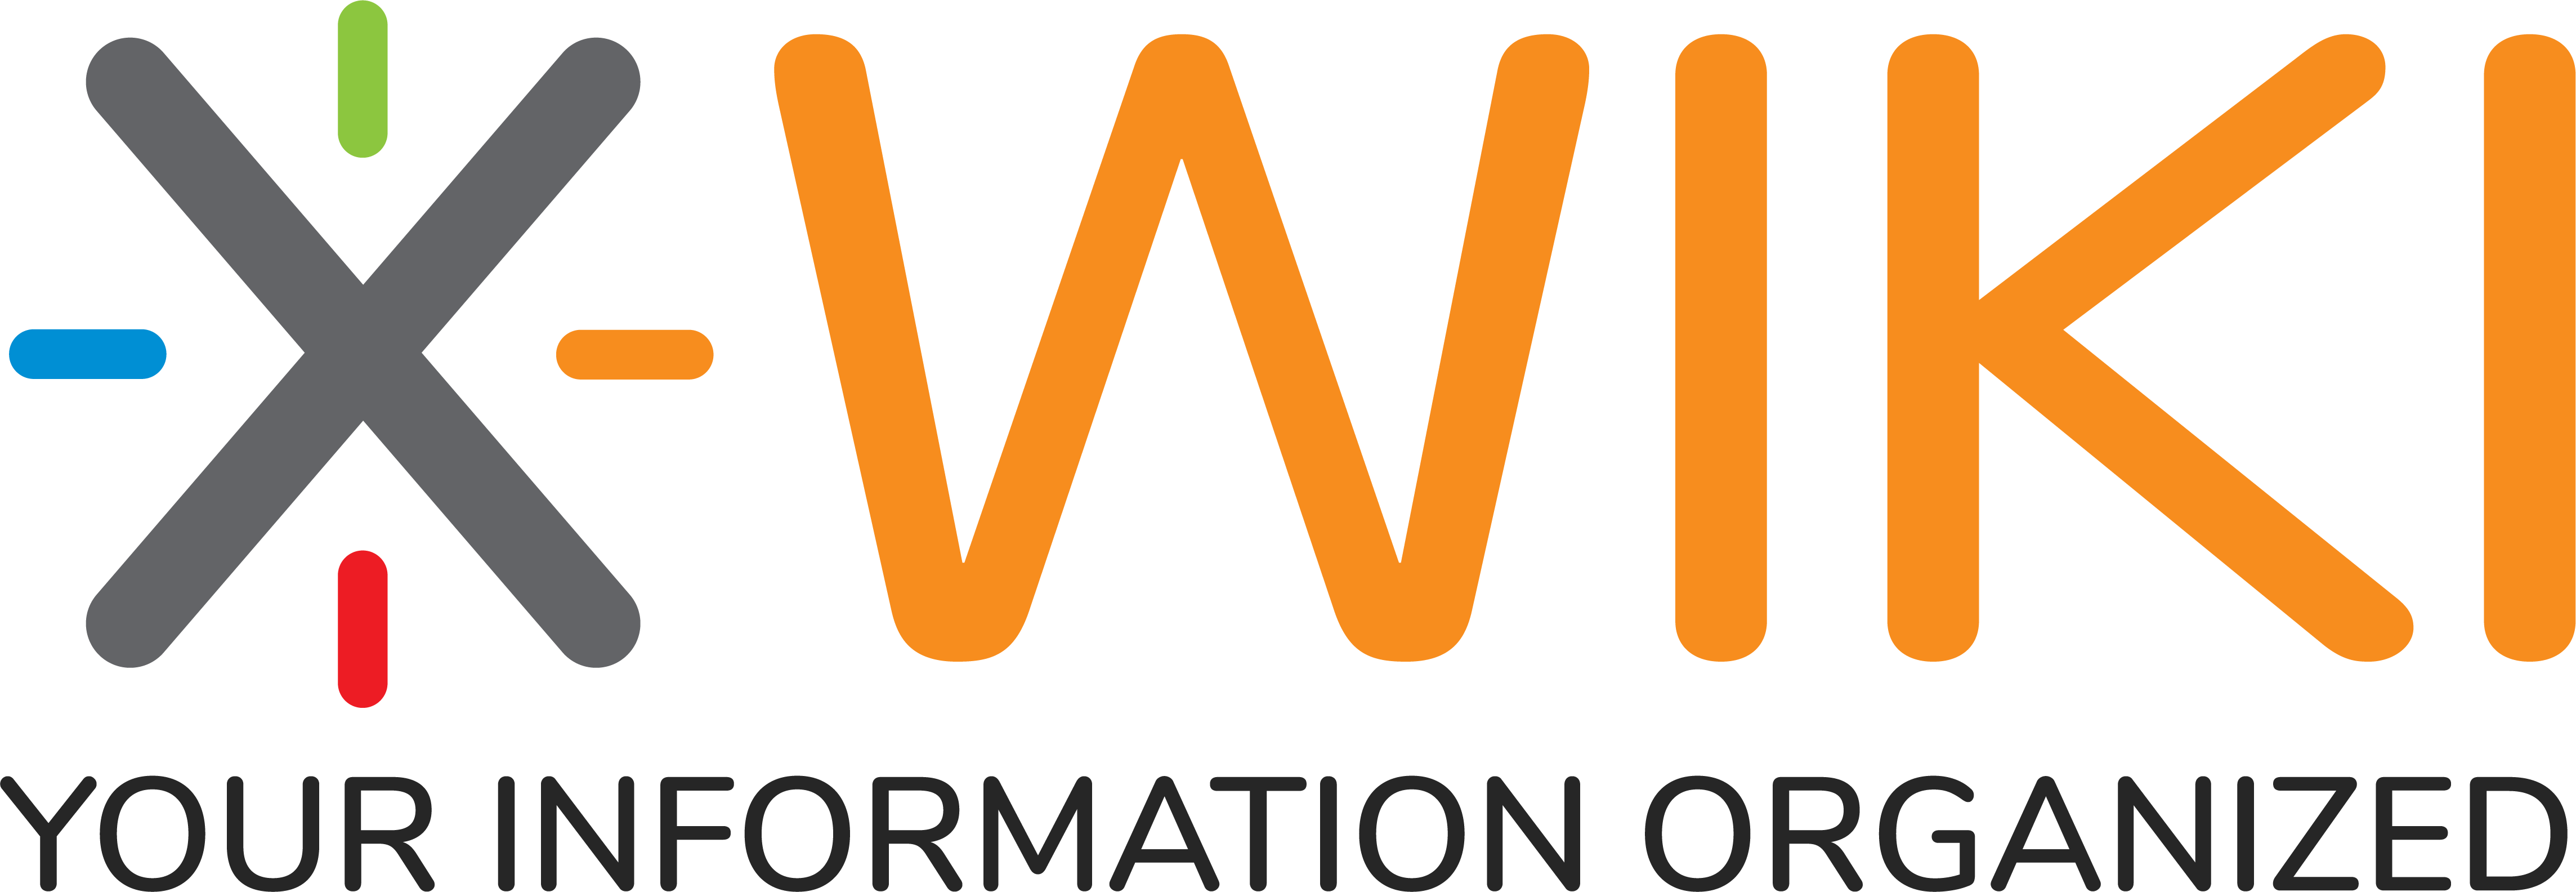 /logos/other/XWiki-Logo-with-tagline-en@4x.png